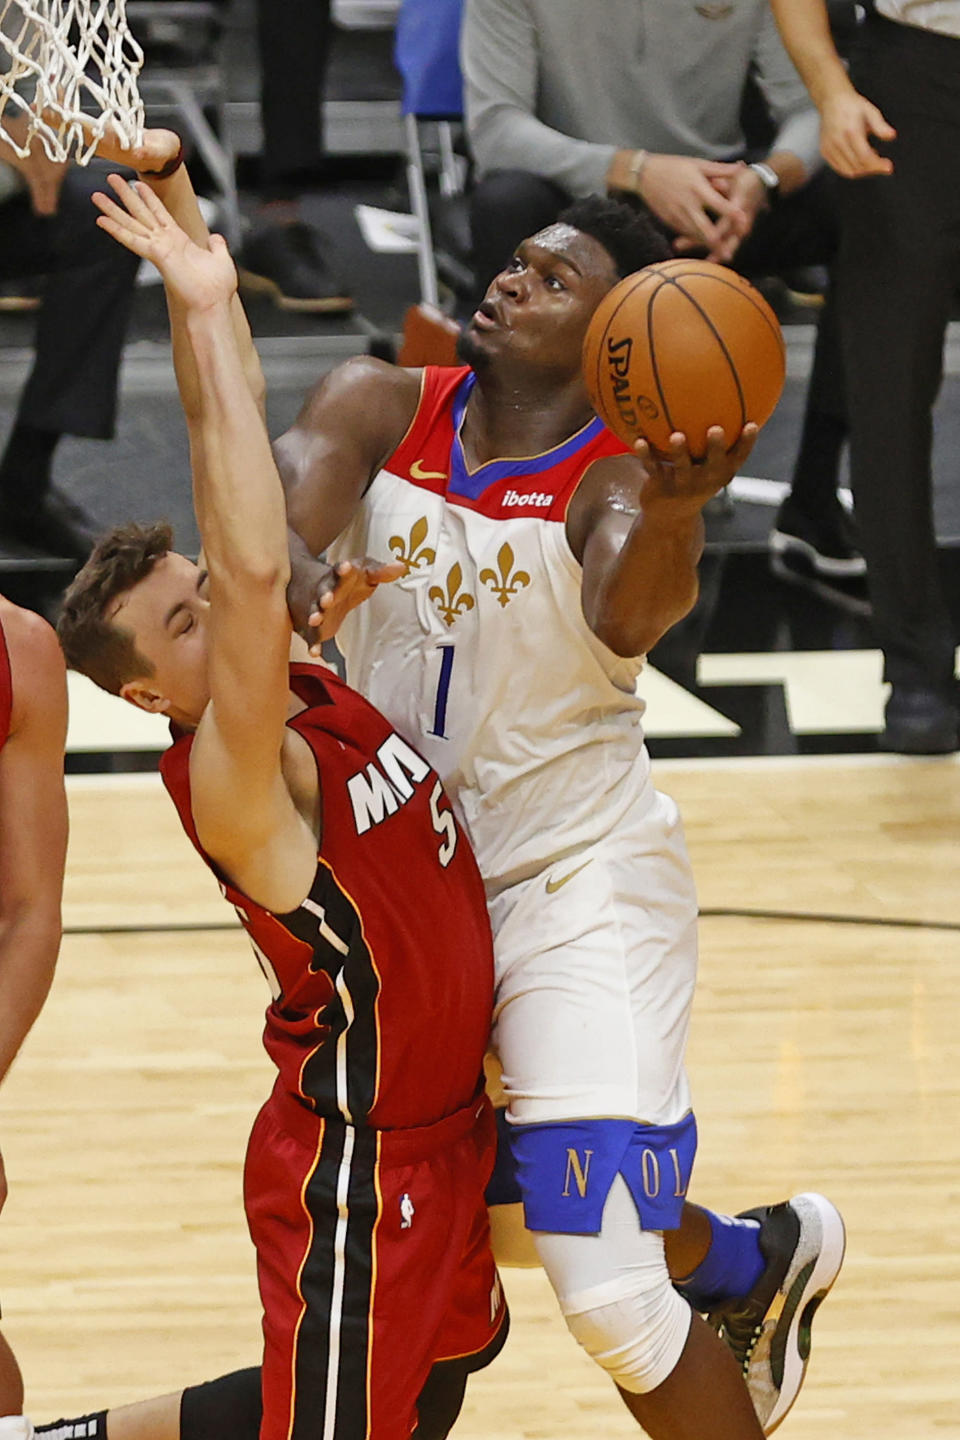 New Orleans Pelicans forward Zion Williamson (1) drives to the basket against Miami Heat forward Duncan Robinson (55) during the first half of an NBA basketball game, Friday, Dec. 25, 2020, in Miami. (AP Photo/Joel Auerbach)